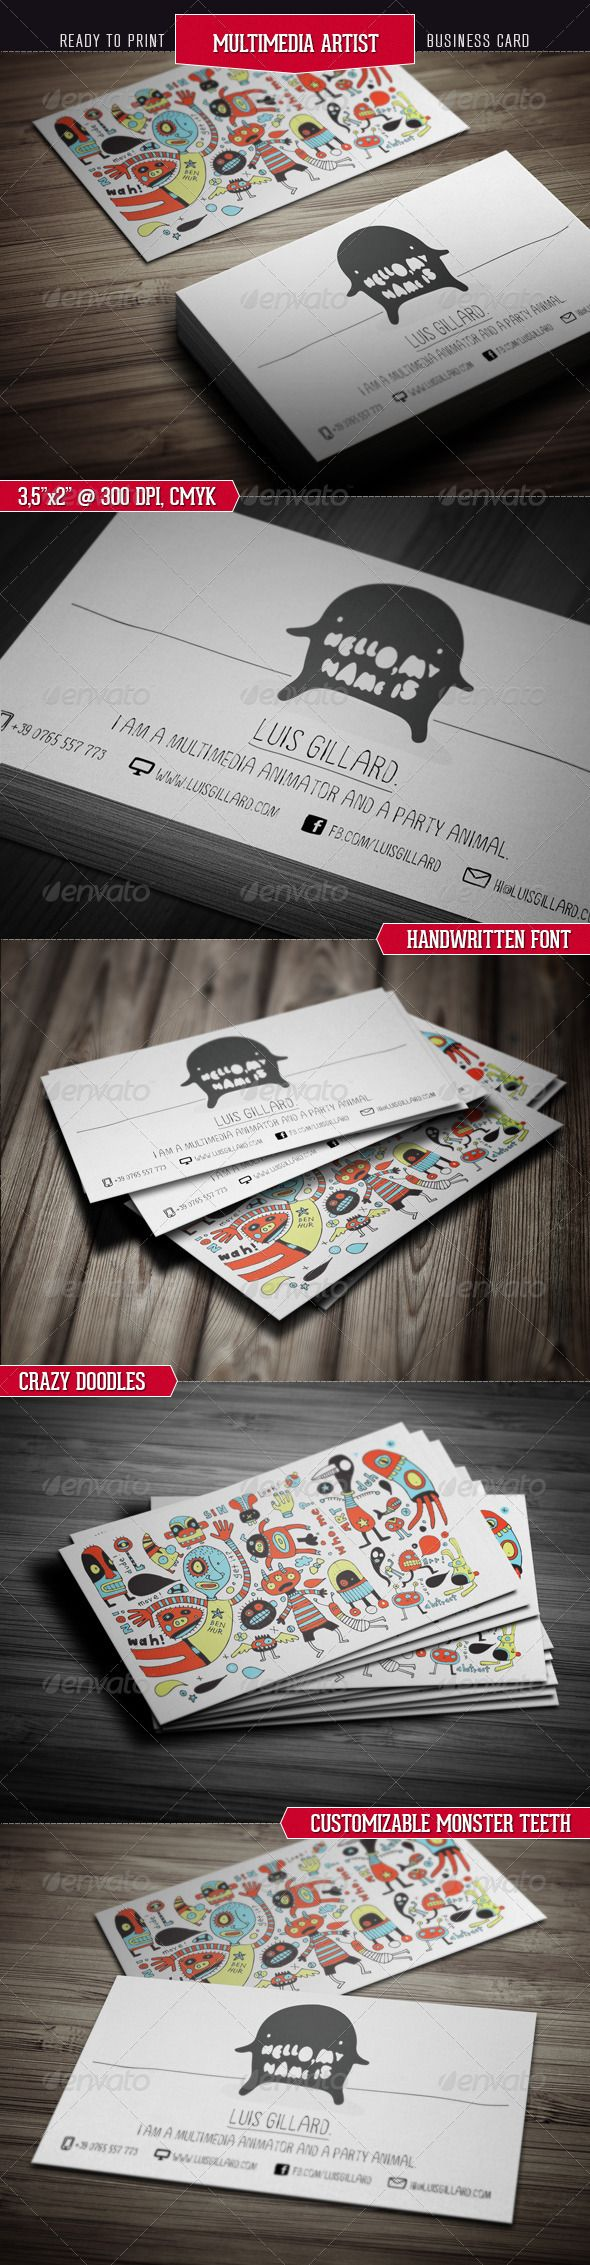 Multimedia Artist Business Card - GraphicRiver Item for Sale